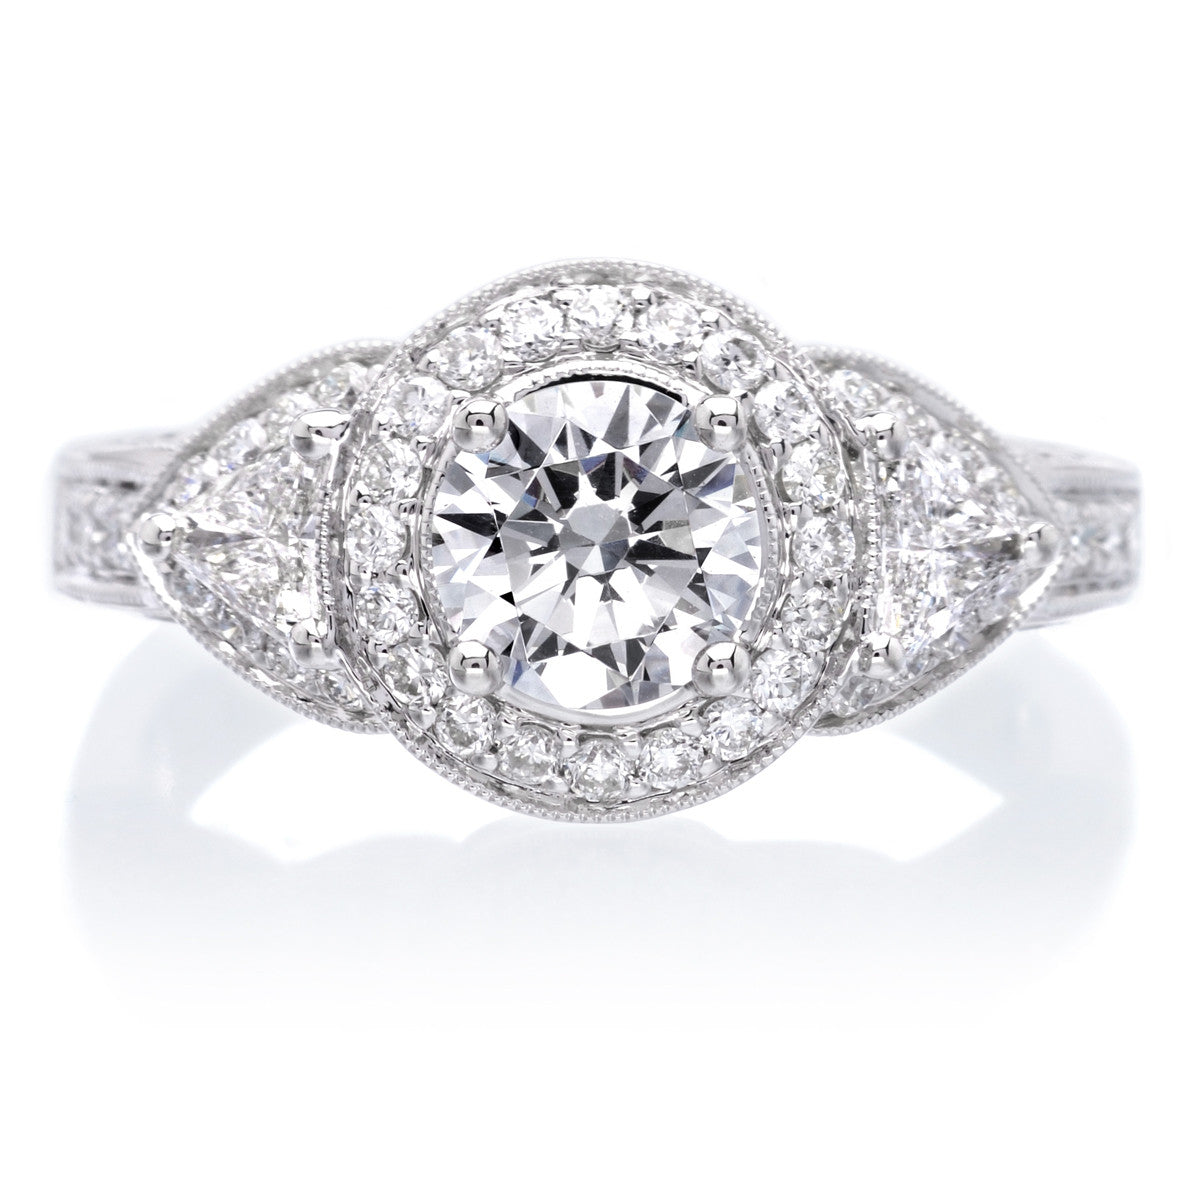 Glamorous Mixed Shape Three Stone Diamond Engagement Ring